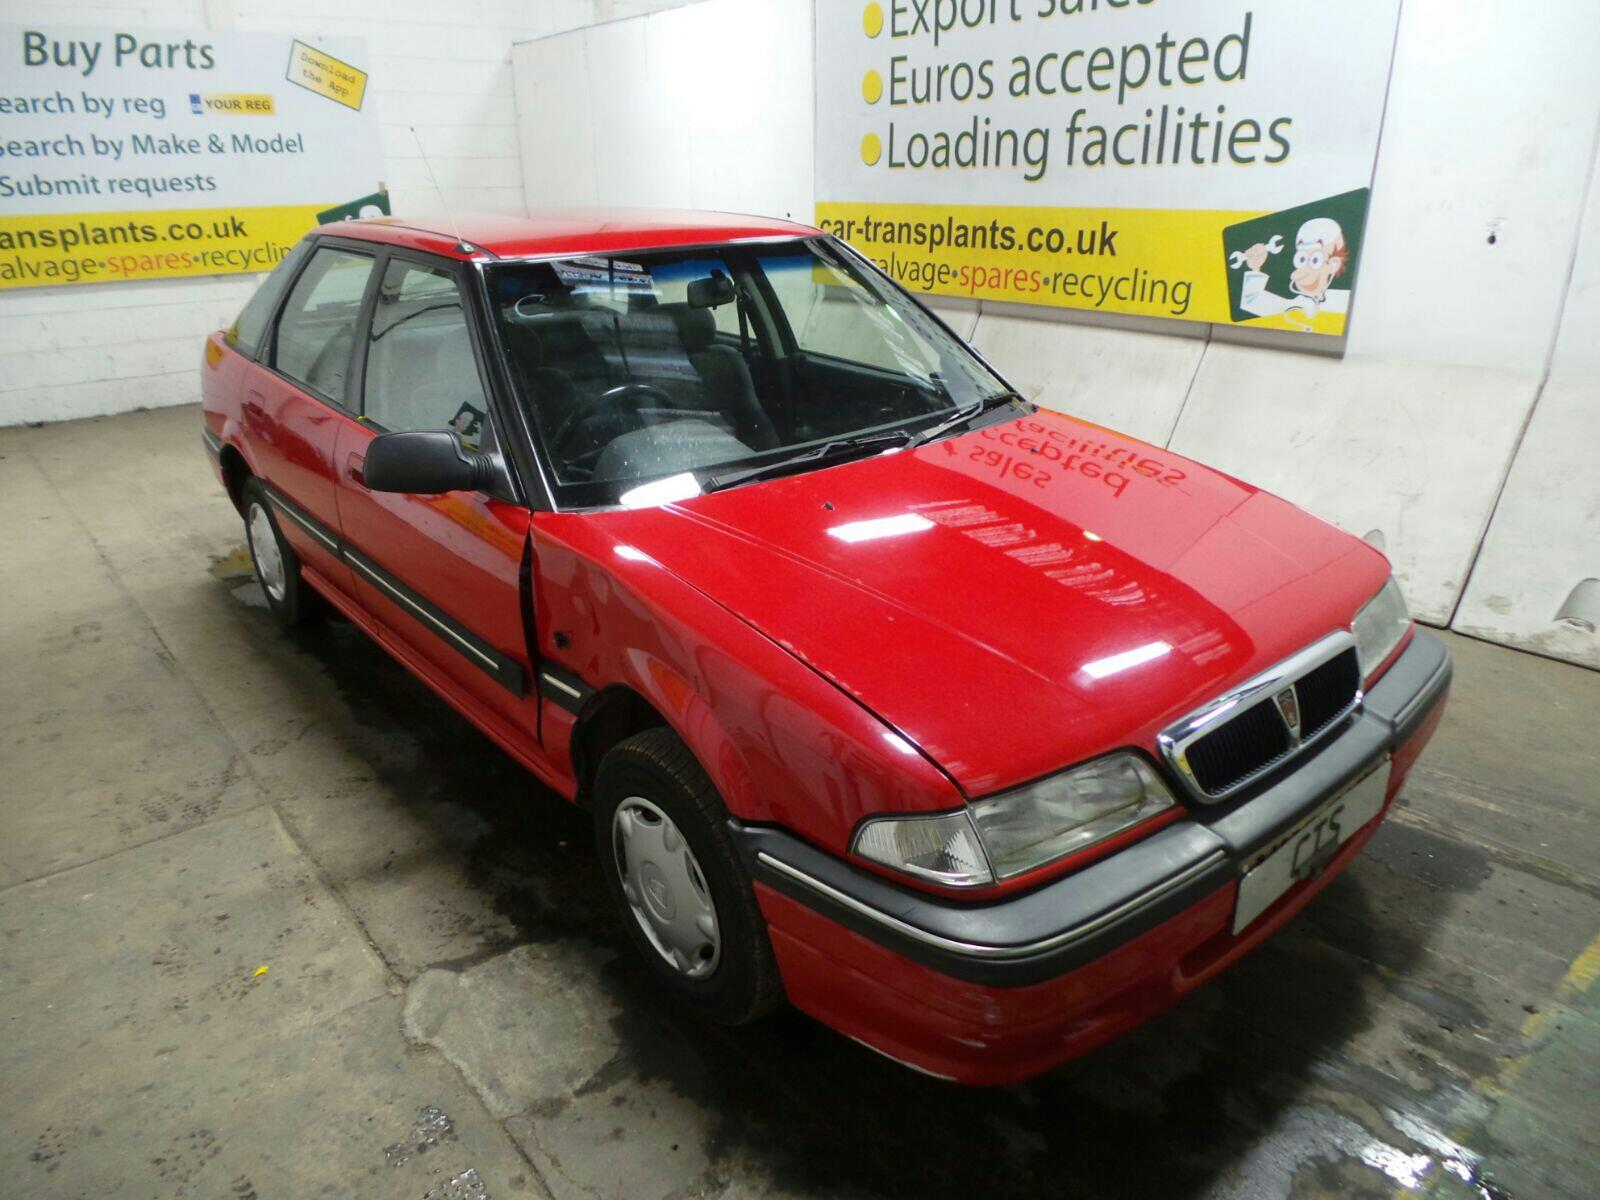 1995 Rover 200 1989 To 1995 5 Door Hatchback